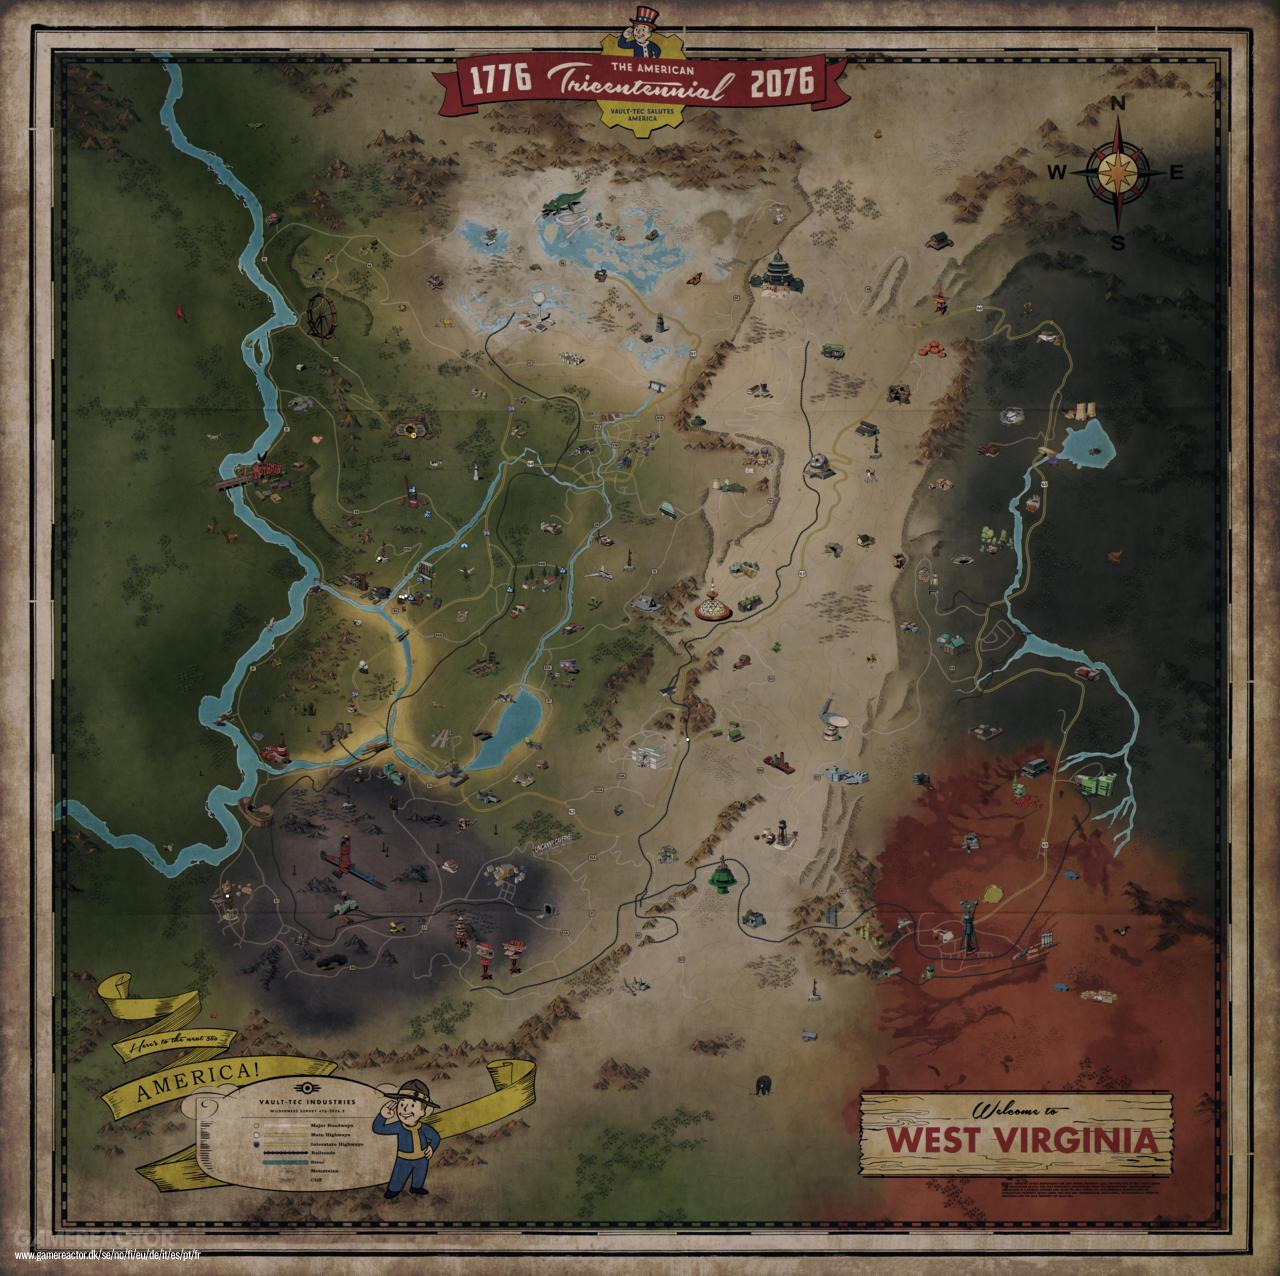 Fallout New Vegas Map Locations Revealed | www.topsimages.com